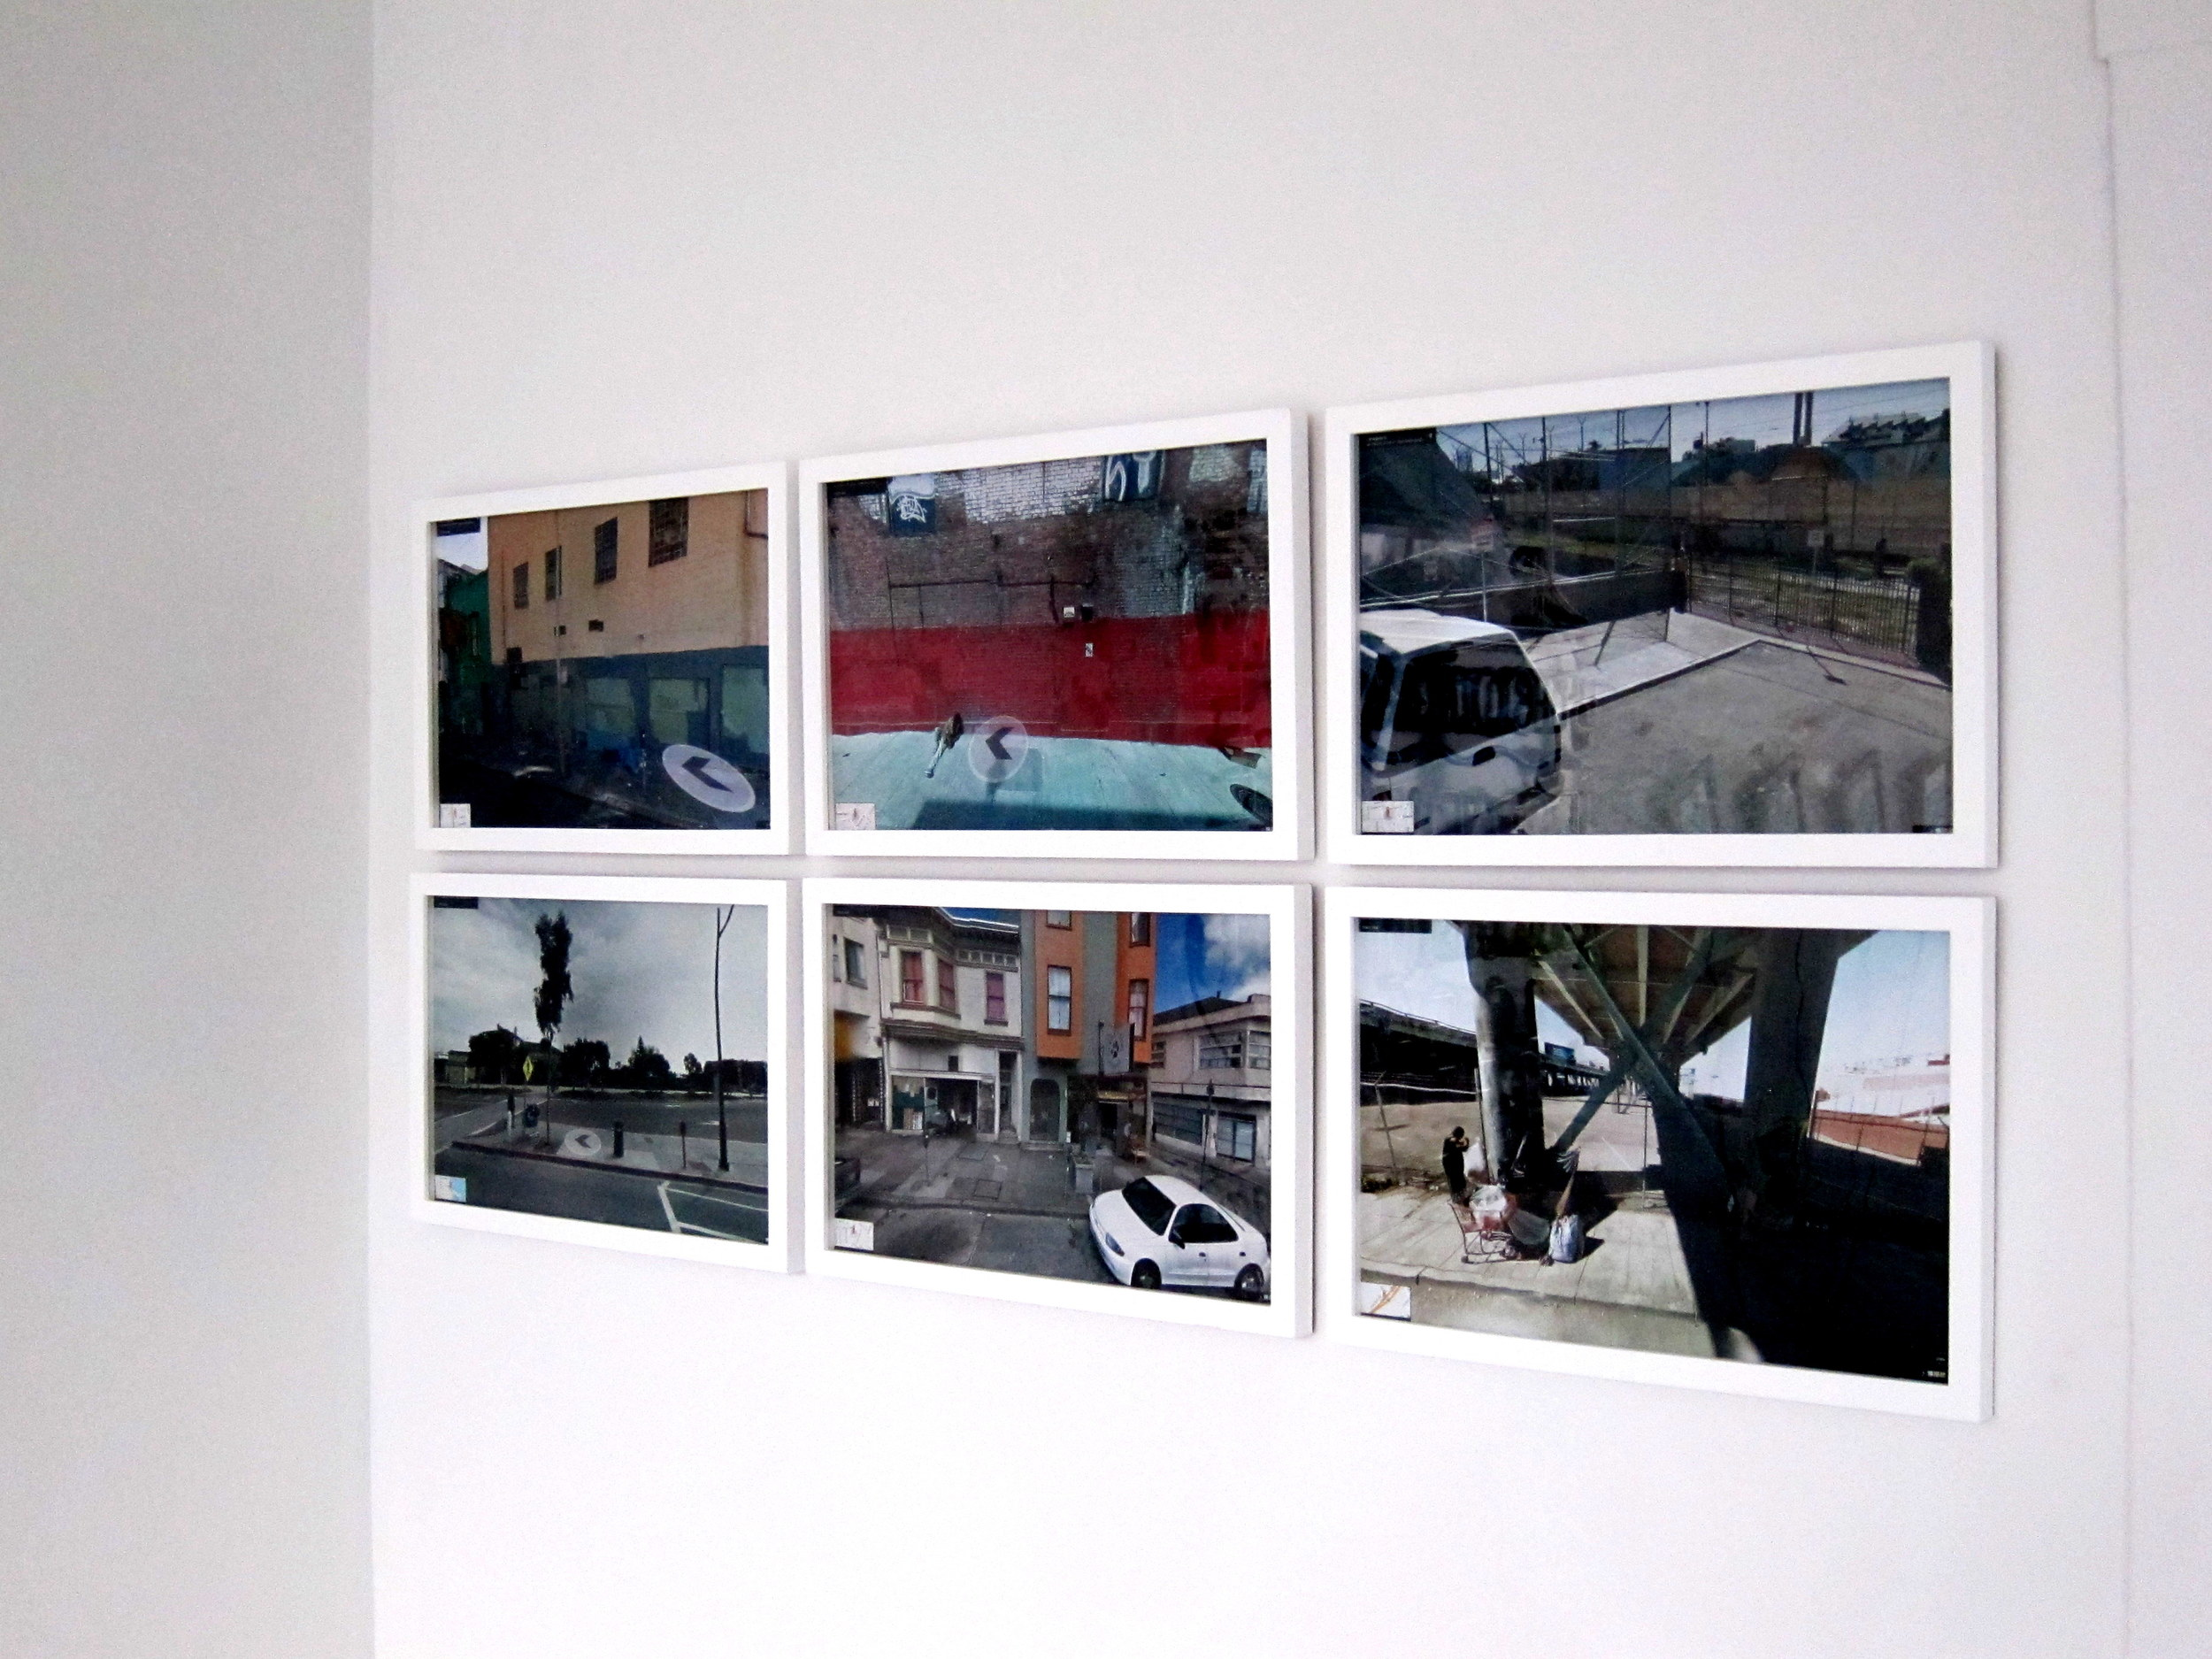 COLL.EO, A New American Dream, 2014.Six framed digital prints measuring 11 x 17 inches each from the ongoing series A New American Dream (2014-) hung on the wall in a grid (3 x 2).